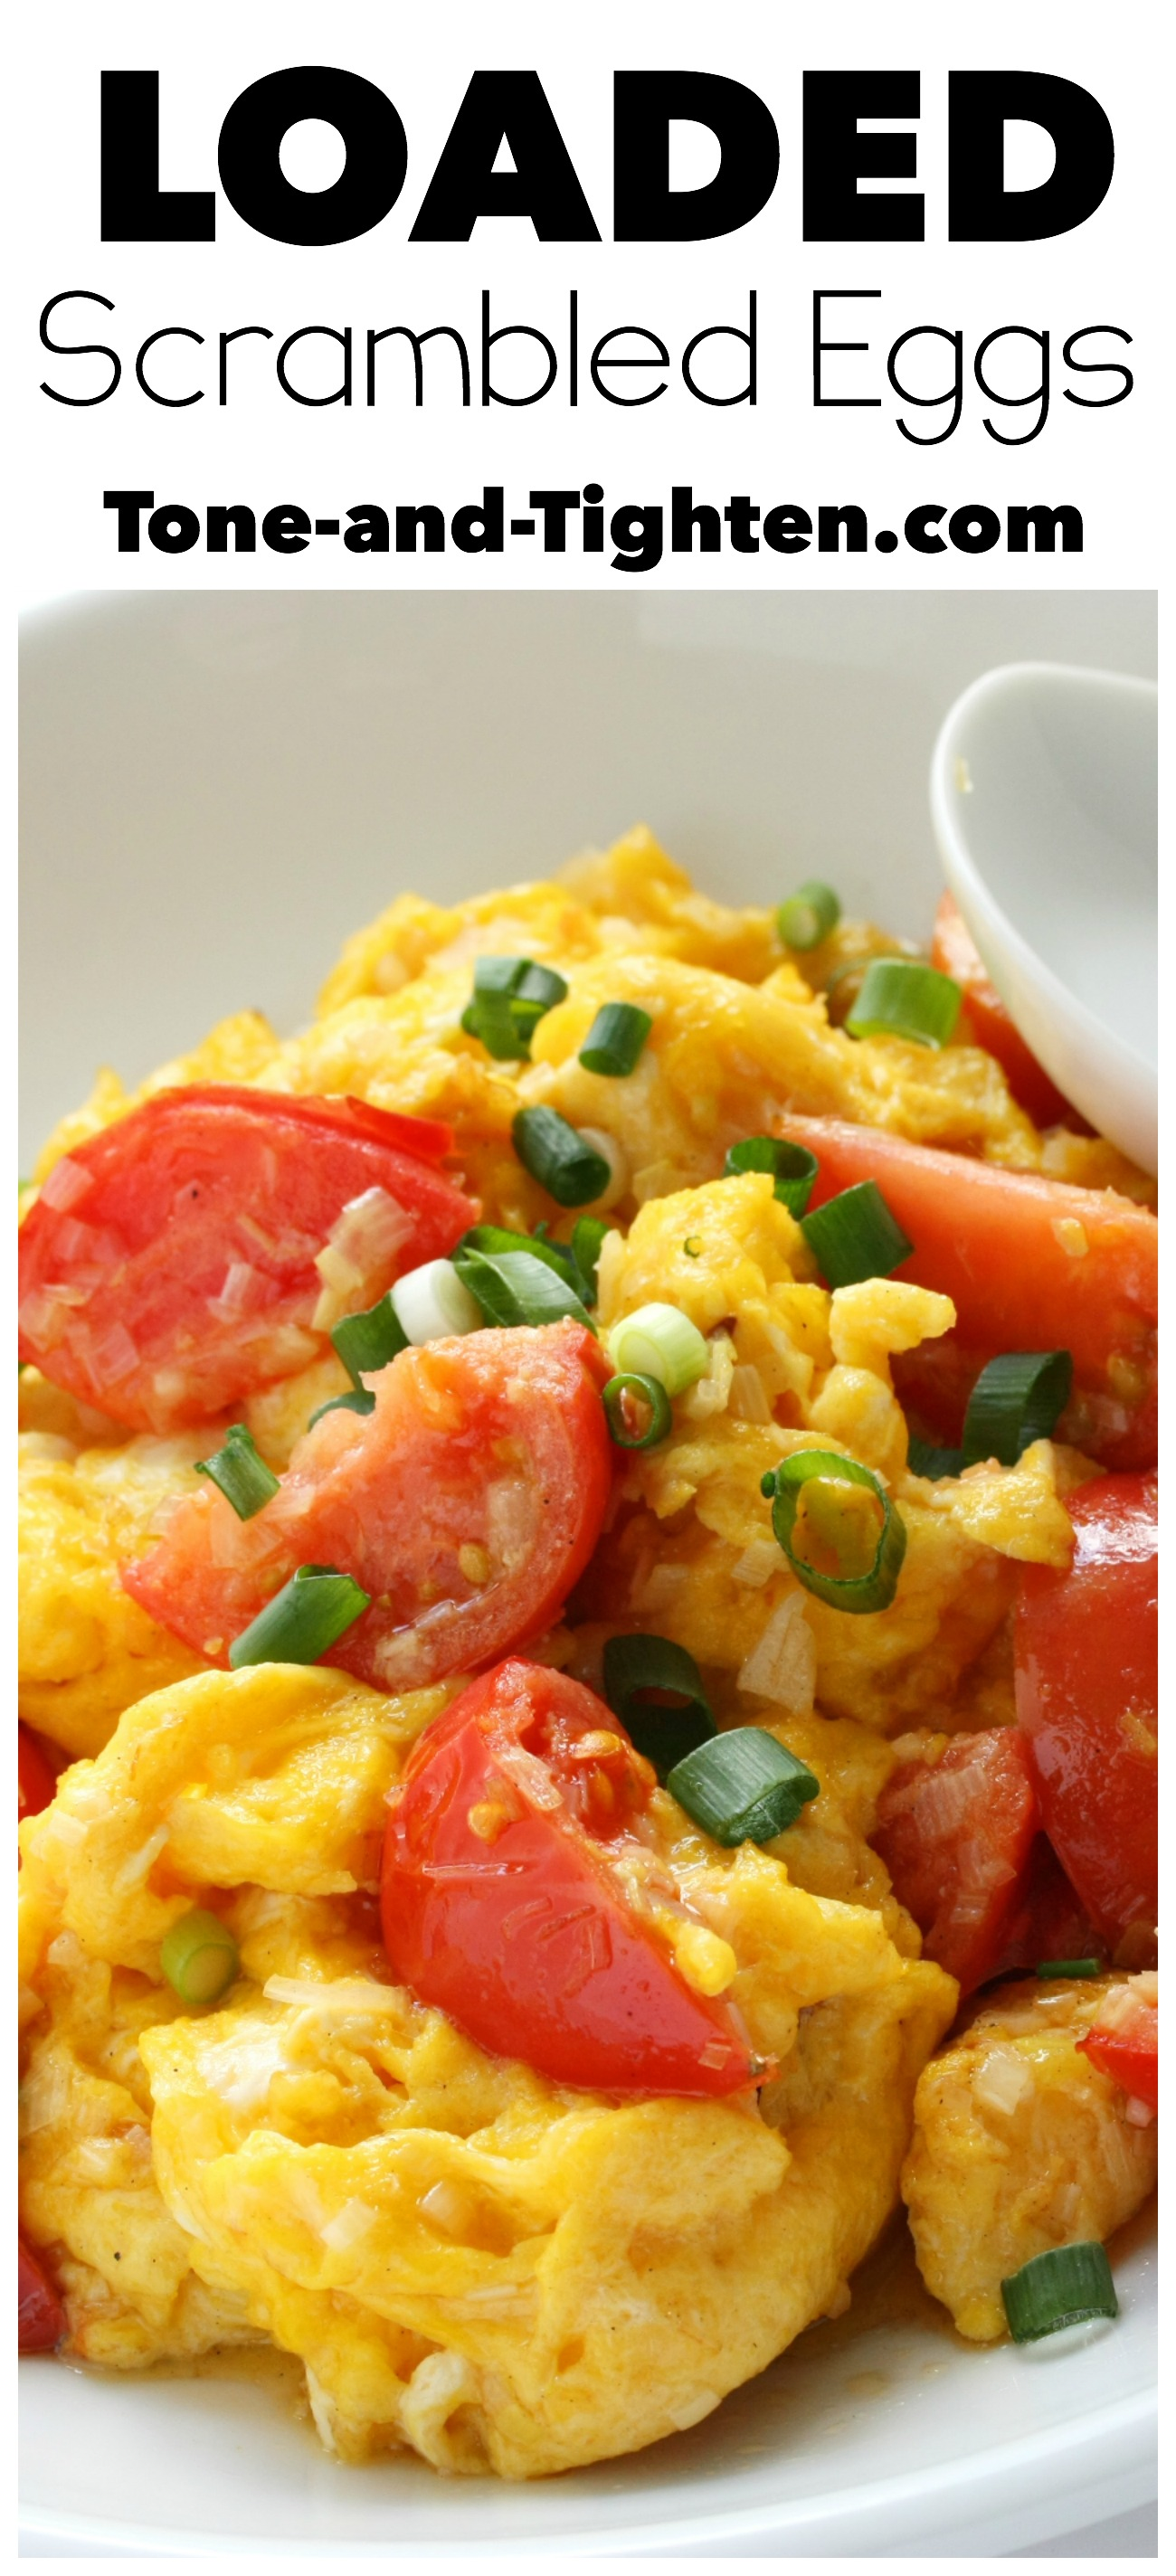 Loaded Scrambled Eggs from Tone-and-Tighten